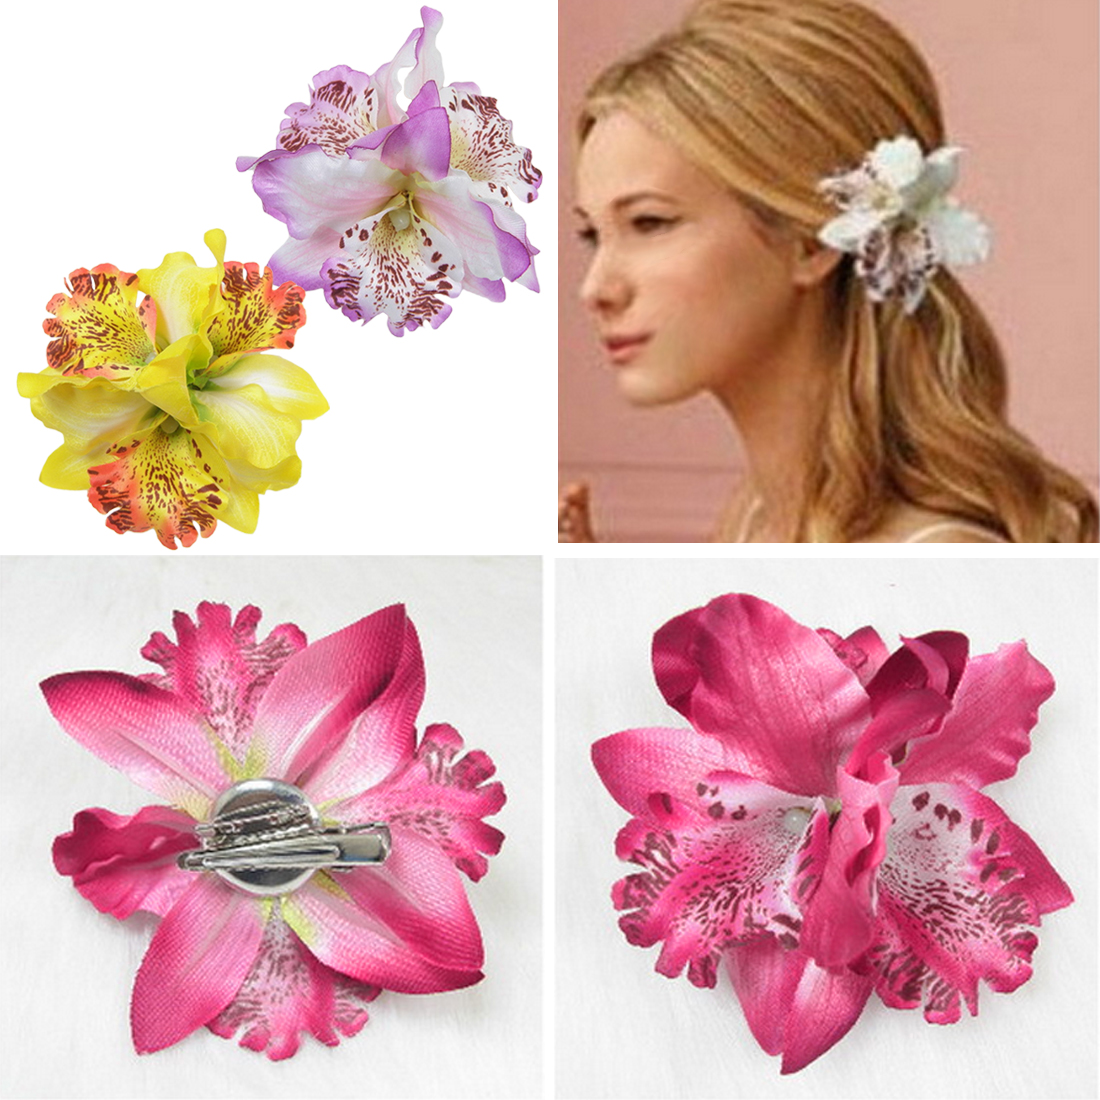 us $0.87 20% off|seaside holiday travel photo simulation three valve thailand phalaenopsis brooch bride orchid flower hair accessories dual use-in